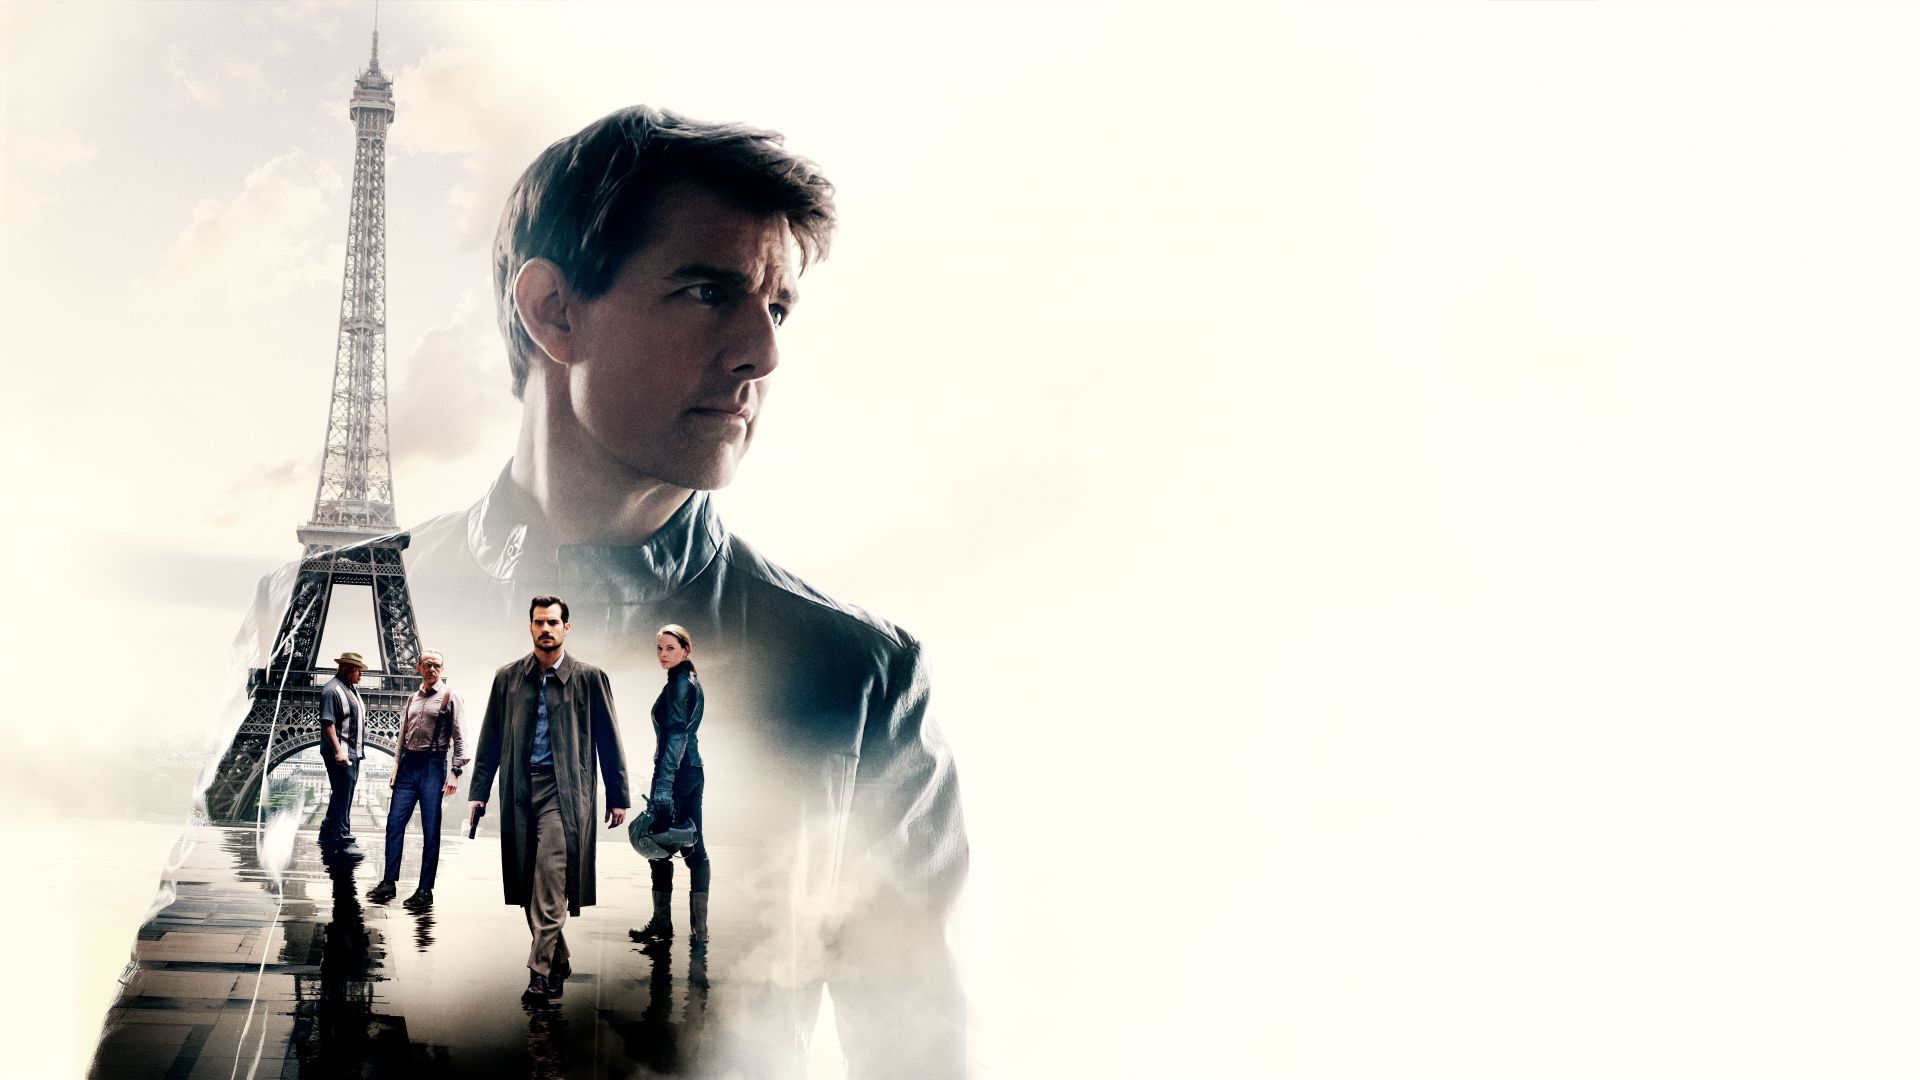 Mission: Impossible - Fallout, poster, Tom Cruise, 4K, 12K (horizontal)